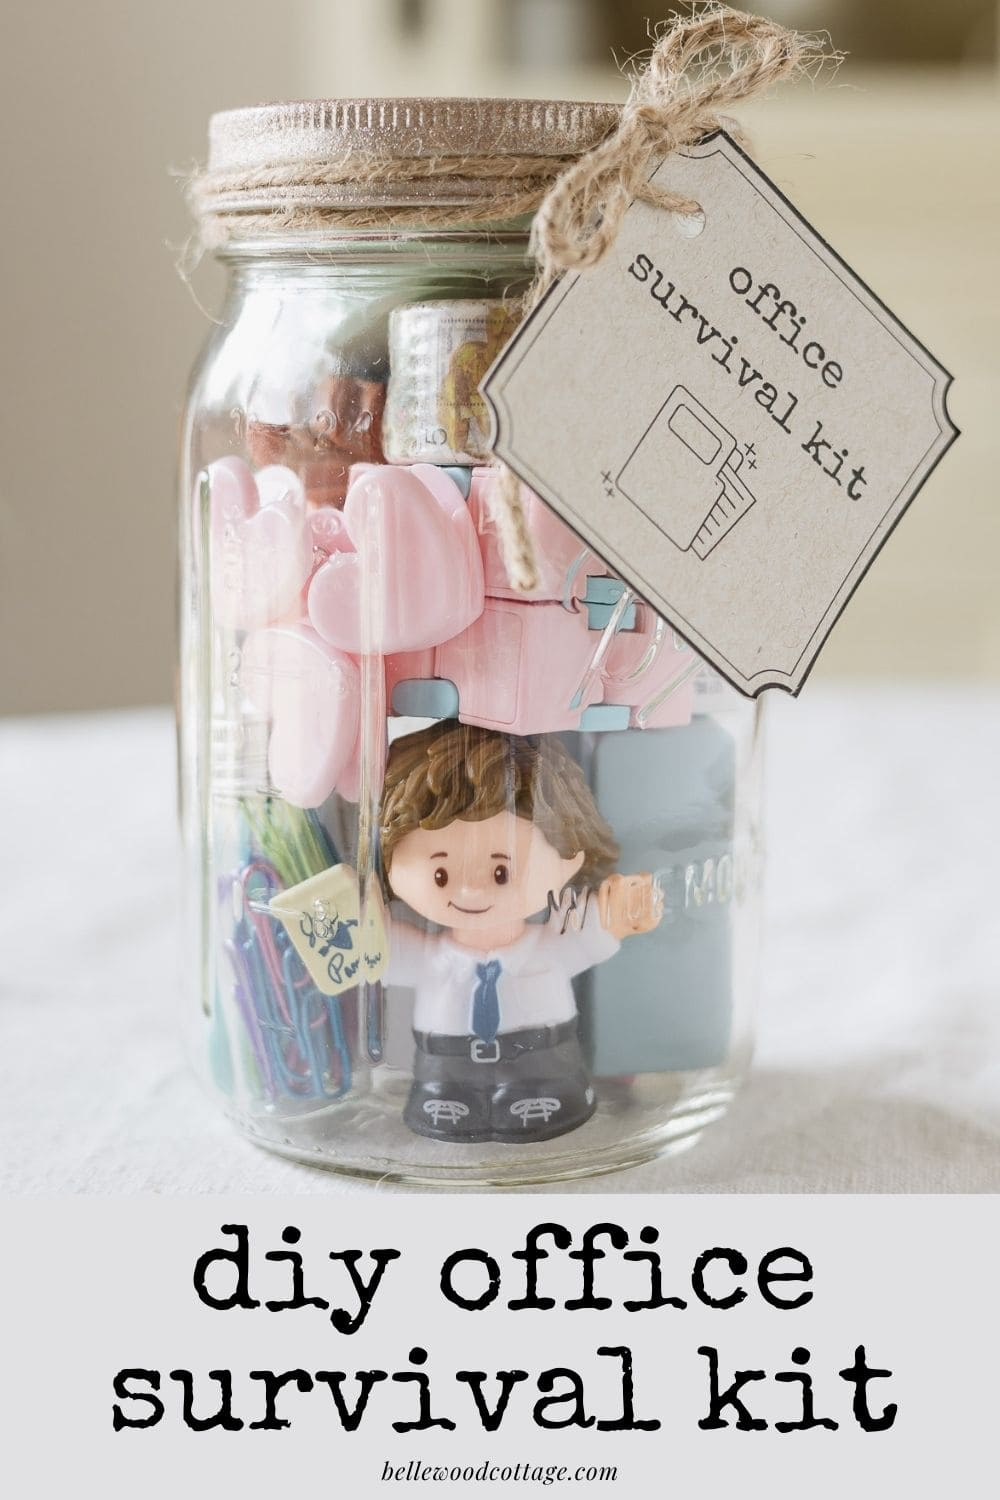 """A mason jar filled with office supplies and gift tag with the words, """"DIY Office Survival Kit"""" on the image."""